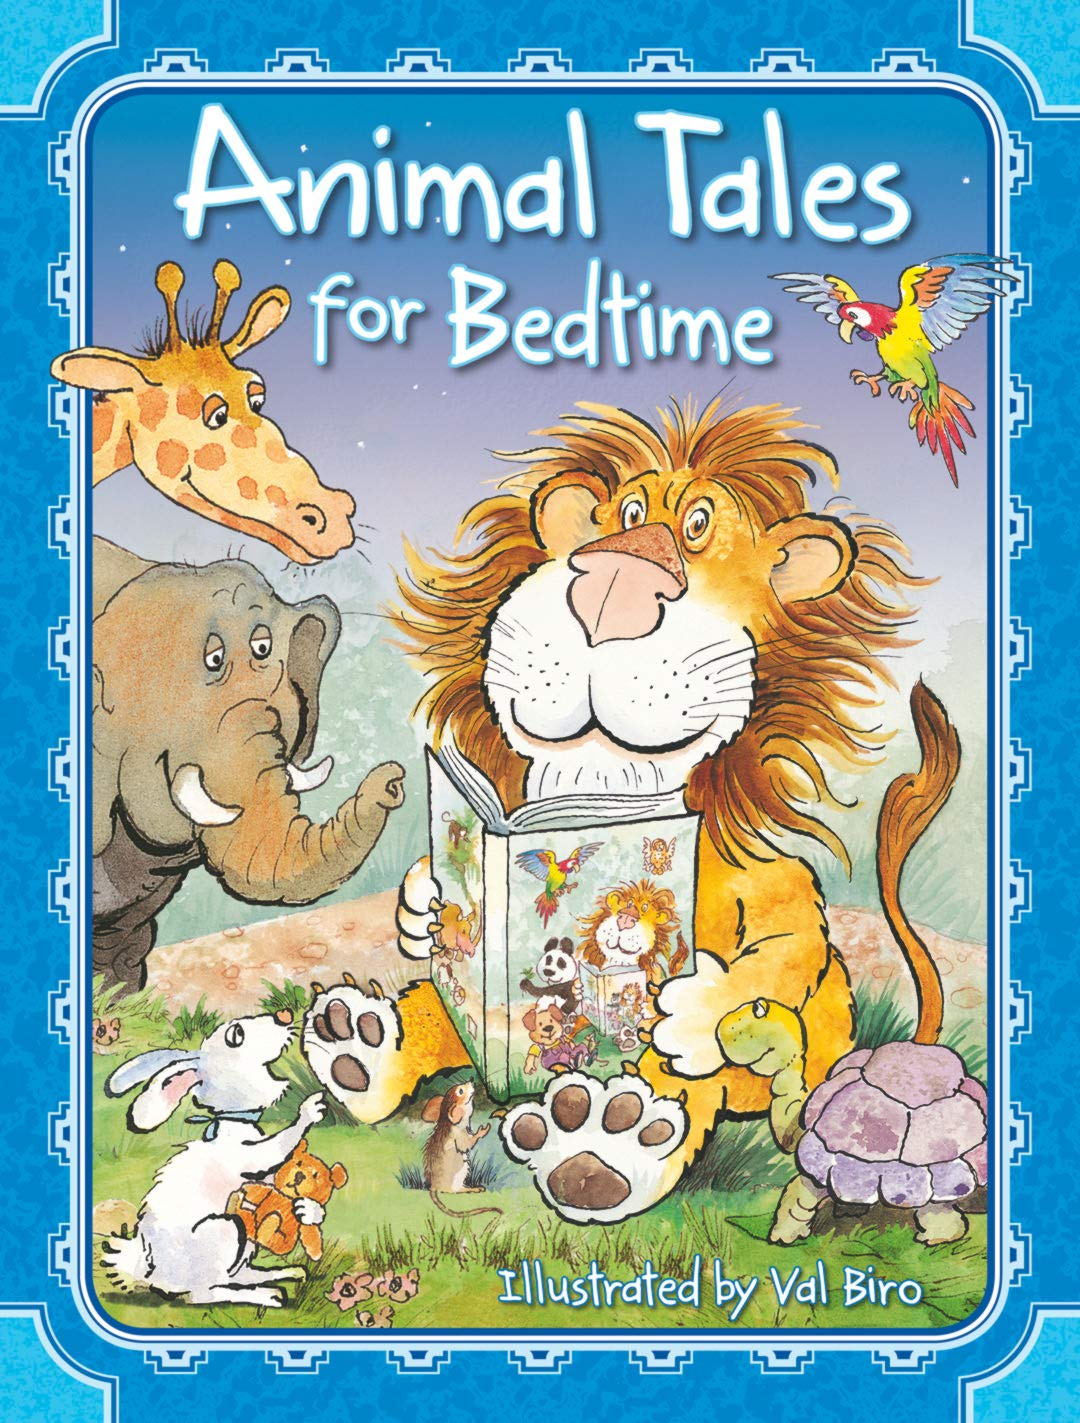 ANIMAL TALES FOR BEDTIME: AGE 4+